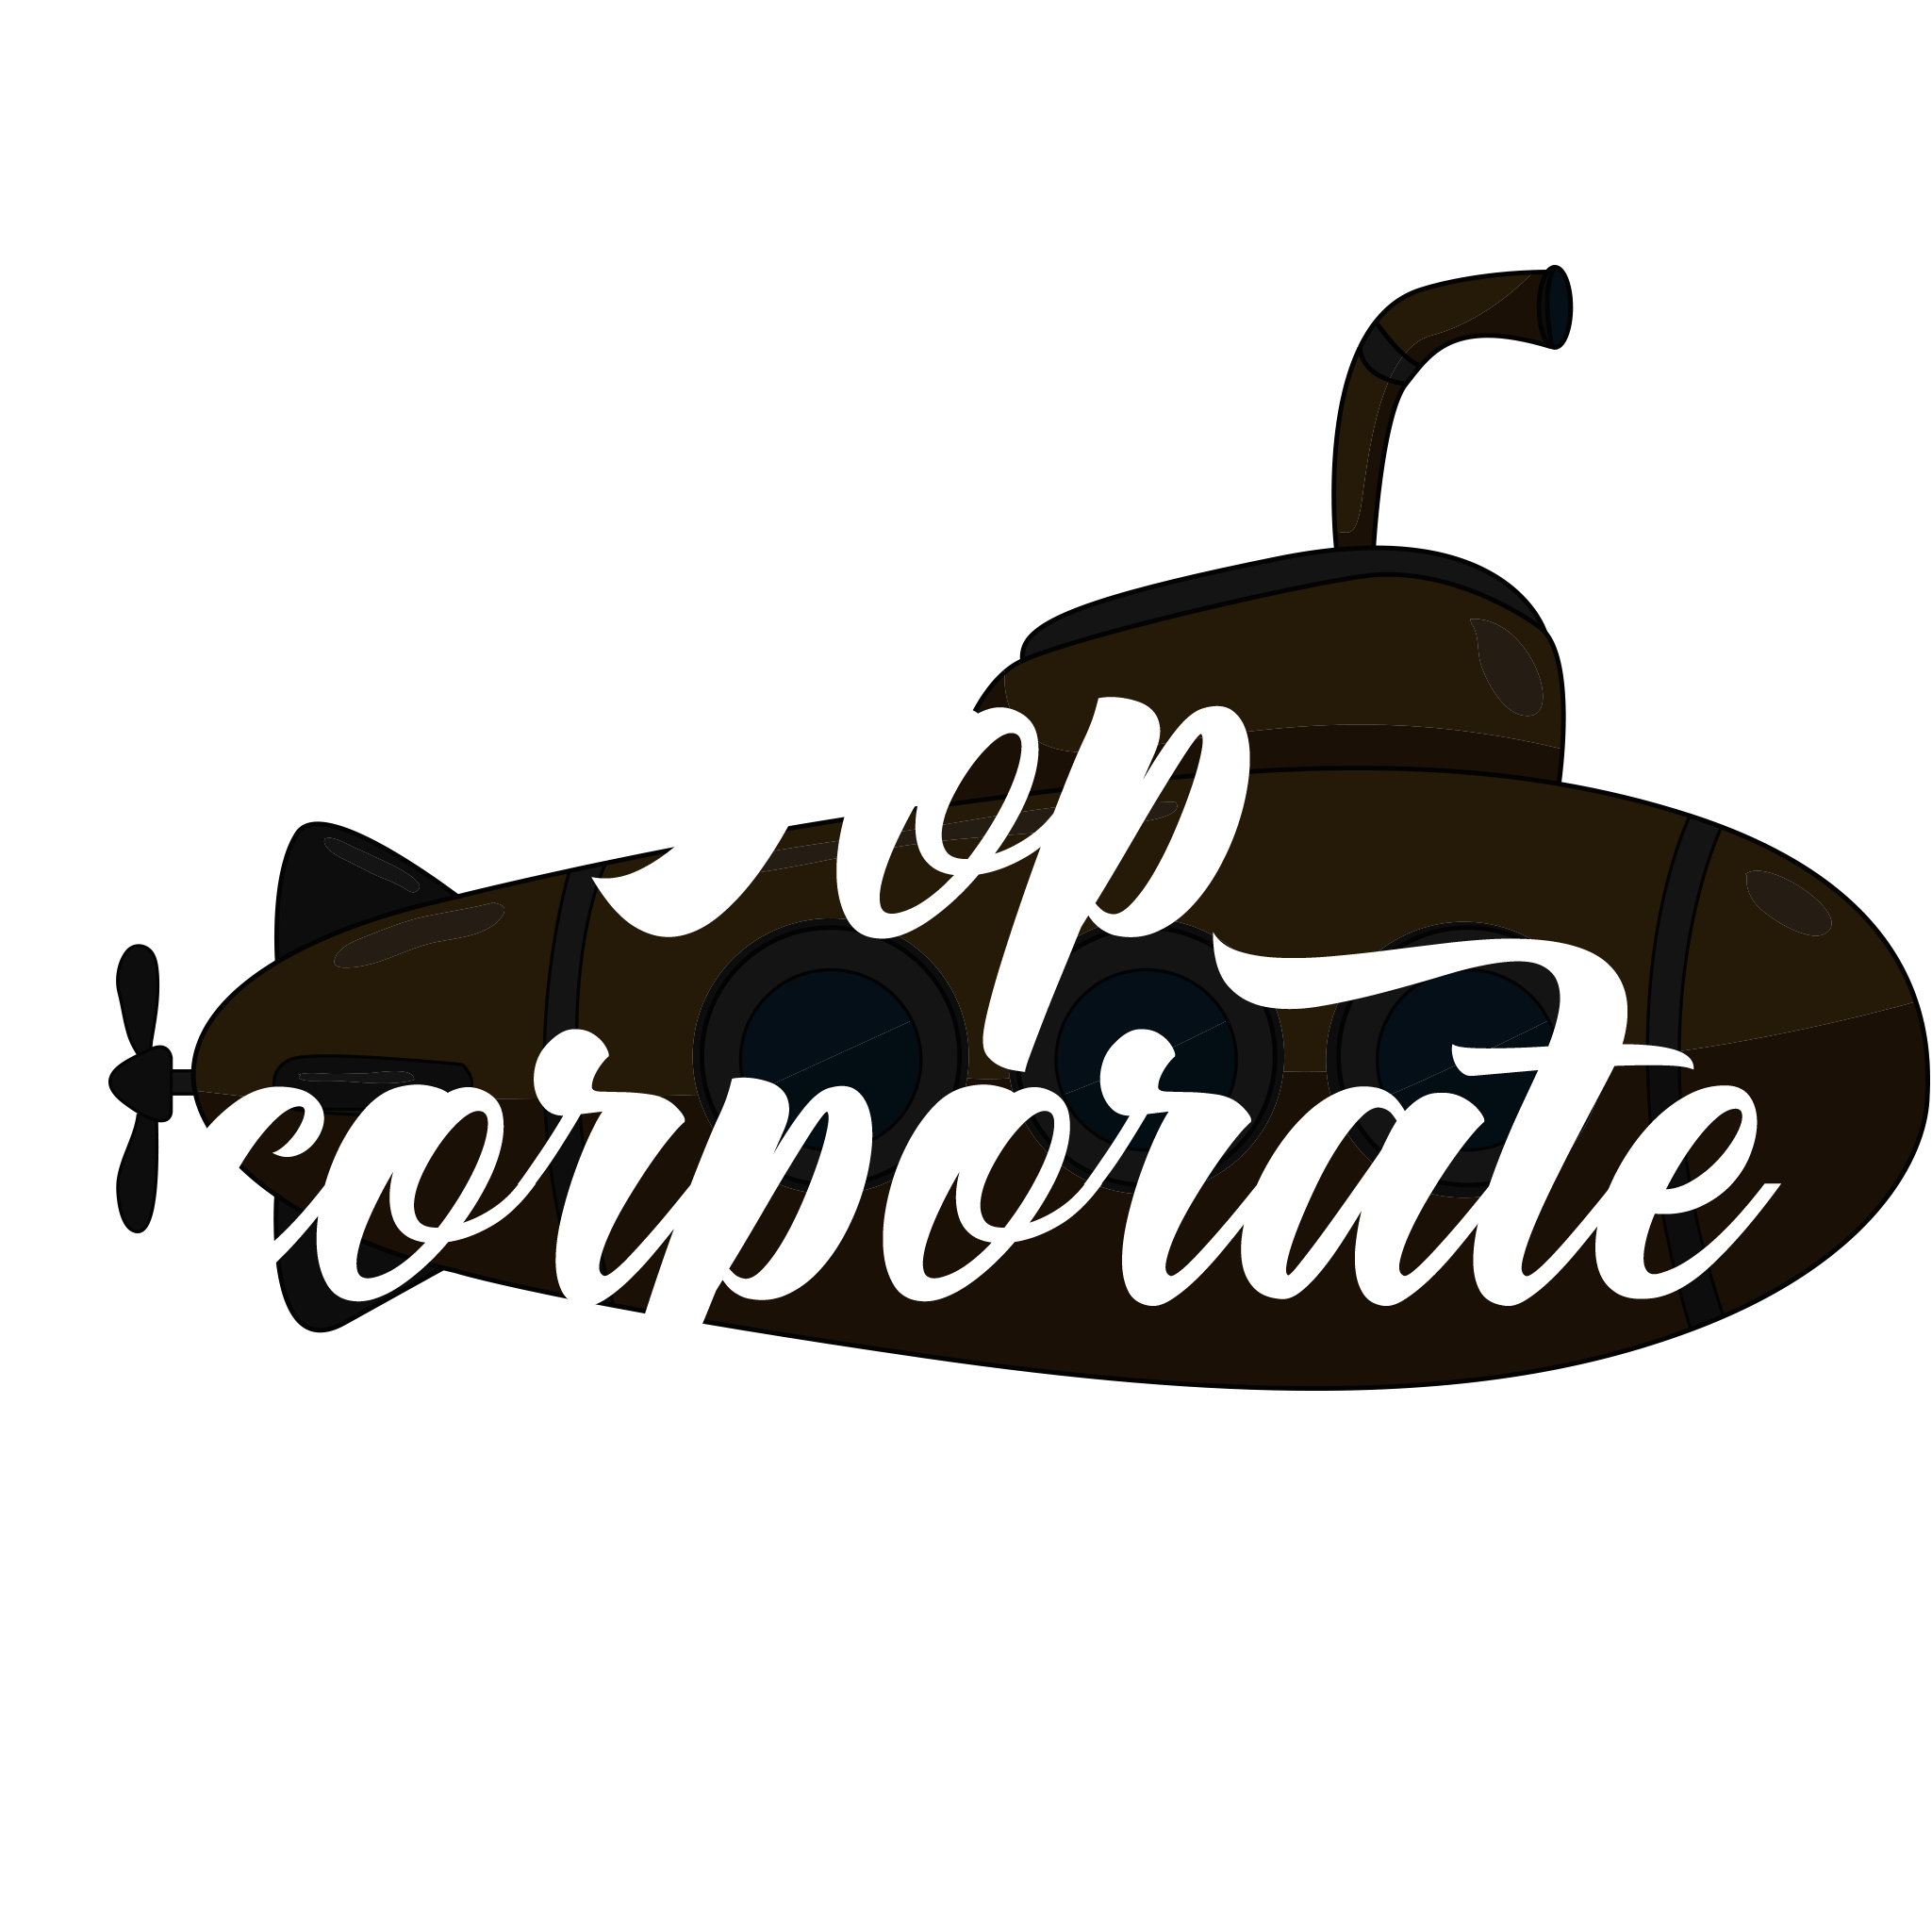 award-best-corporate-partner-white